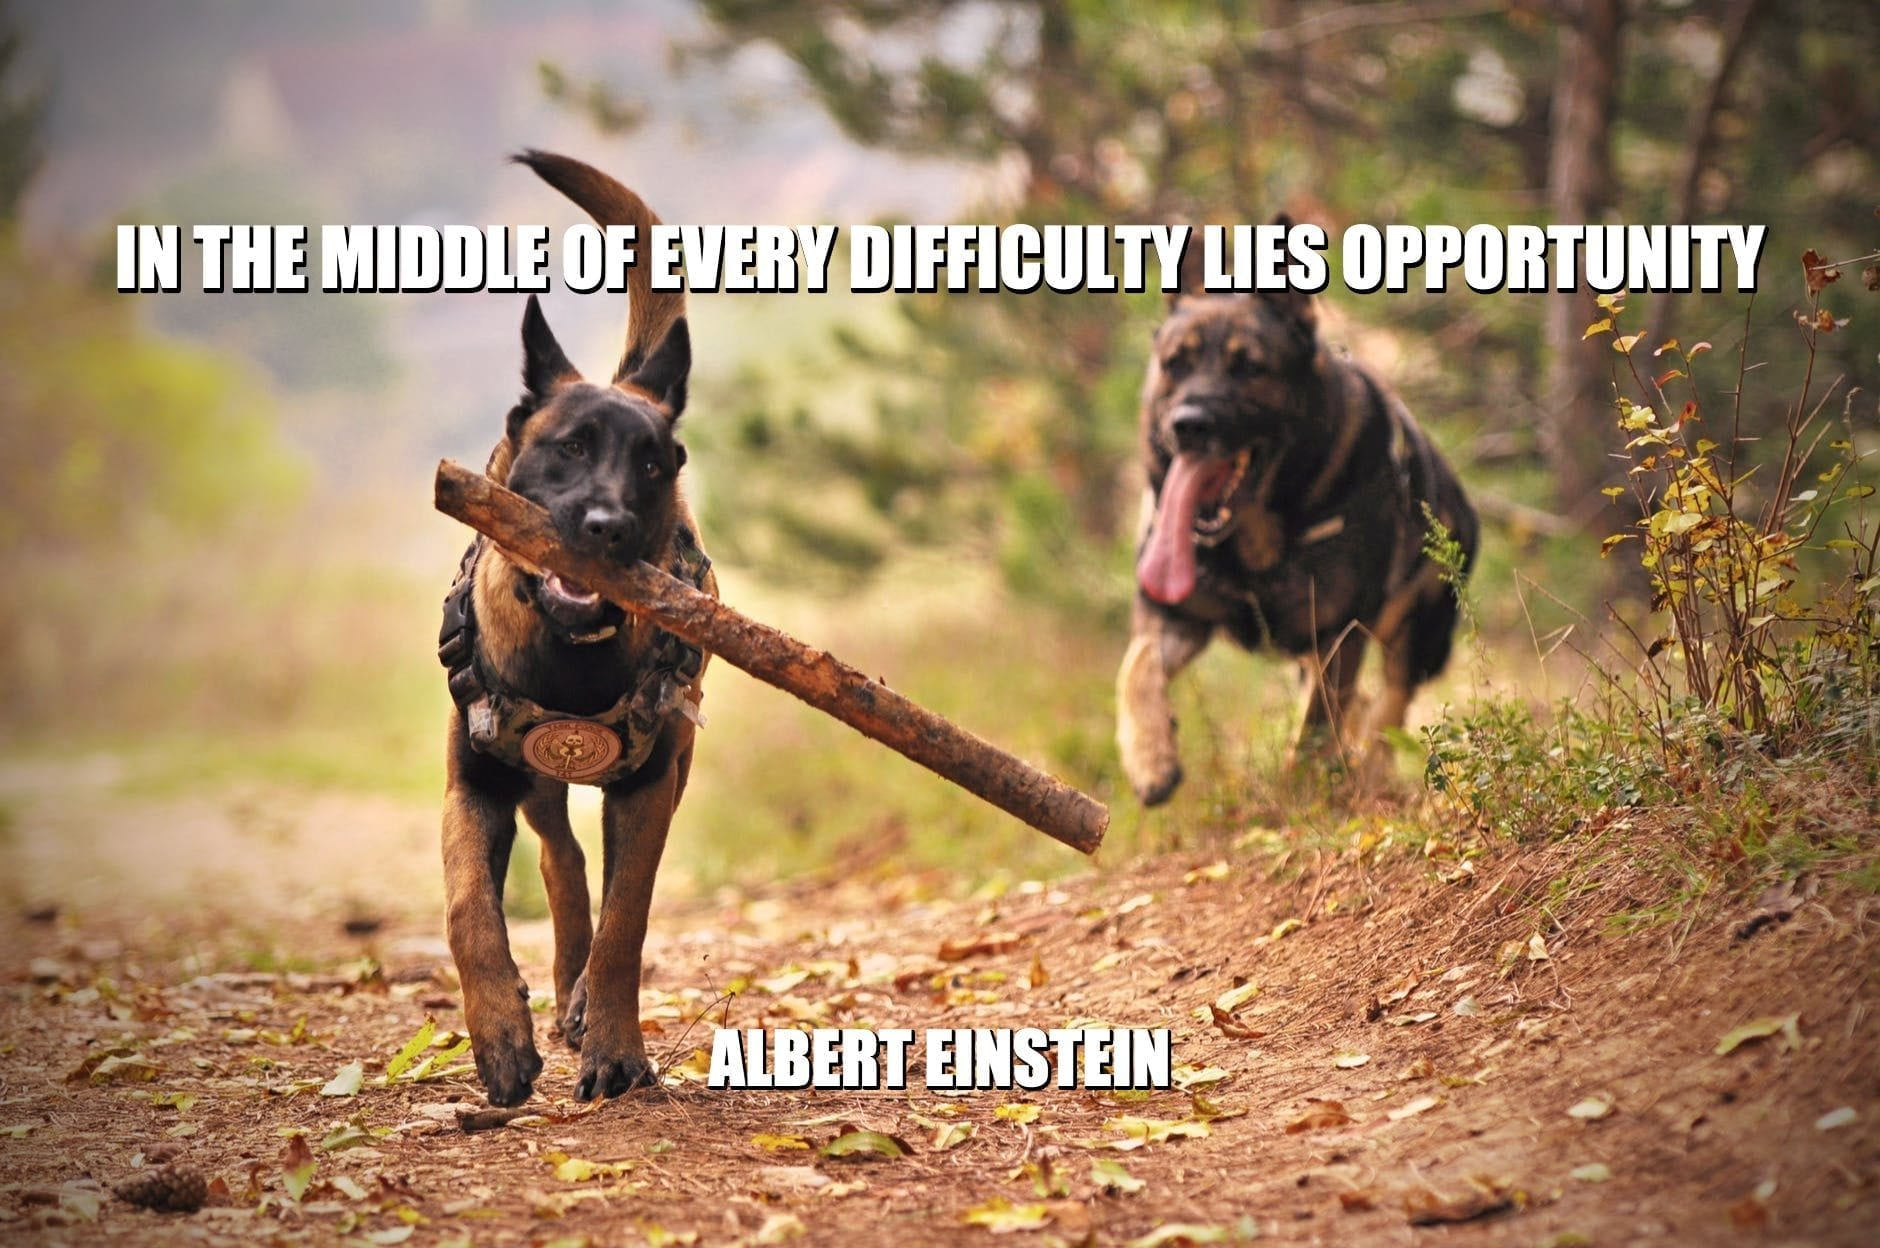 Daily Quotes: In The Middle Of Every Difficulty Lies Opportunity petworldglobal.com